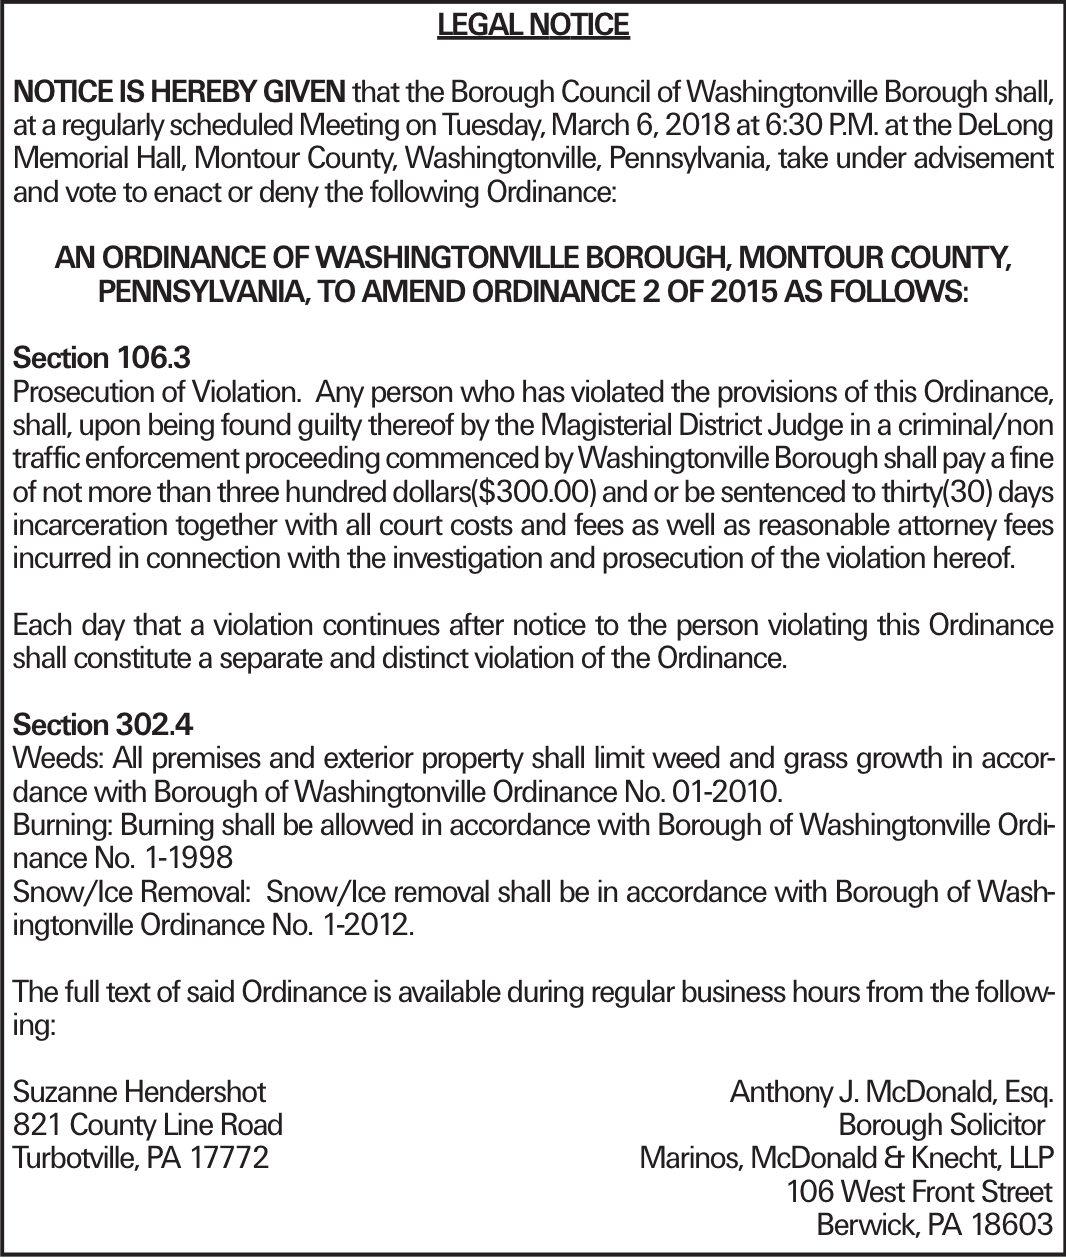 LEGAL NOTICE NOTICE IS HEREBY GIVEN that the Borough Council of Washingtonville Borough shall, at a regularly scheduled Meeting on Tuesday, March 6, 2018 at 6:30 P.M. at the DeLong Memorial Hall, Montour County, Washingtonville, Pennsylvania, take under advisement and vote to enact or deny the following Ordinance: AN ORDINANCE OF WASHINGTONVILLE BOROUGH, MONTOUR COUNTY, PENNSYLVANIA, TO AMEND ORDINANCE 2 OF 2015 AS FOLLOWS: Section 106.3 Prosecution of Violation. Any person who has violated the provisions of this Ordinance, shall, upon being found guilty thereof by the Magisterial District Judge in a criminal/non traffic enforcement proceeding commenced by Washingtonville Borough shall pay a fine of not more than three hundred dollars($300.00) and or be sentenced to thirty(30) days incarceration together with all court costs and fees as well as reasonable attorney fees incurred in connection with the investigation and prosecution of the violation hereof. Each day that a violation continues after notice to the person violating this Ordinance shall constitute a separate and distinct violation of the Ordinance. Section 302.4 Weeds: All premises and exterior property shall limit weed and grass growth in accordance with Borough of Washingtonville Ordinance No. 01-2010. Burning: Burning shall be allowed in accordance with Borough of Washingtonville Ordinance No. 1-1998 Snow/Ice Removal: Snow/Ice removal shall be in accordance with Borough of Washingtonville Ordinance No. 1-2012. The full text of said Ordinance is available during regular business hours from the following: Suzanne Hendershot Anthony J. McDonald, Esq. 821 County Line Road Borough Solicitor Turbotville, PA 17772 Marinos, McDonald & Knecht, LLP 106 West Front Street Berwick, PA 18603